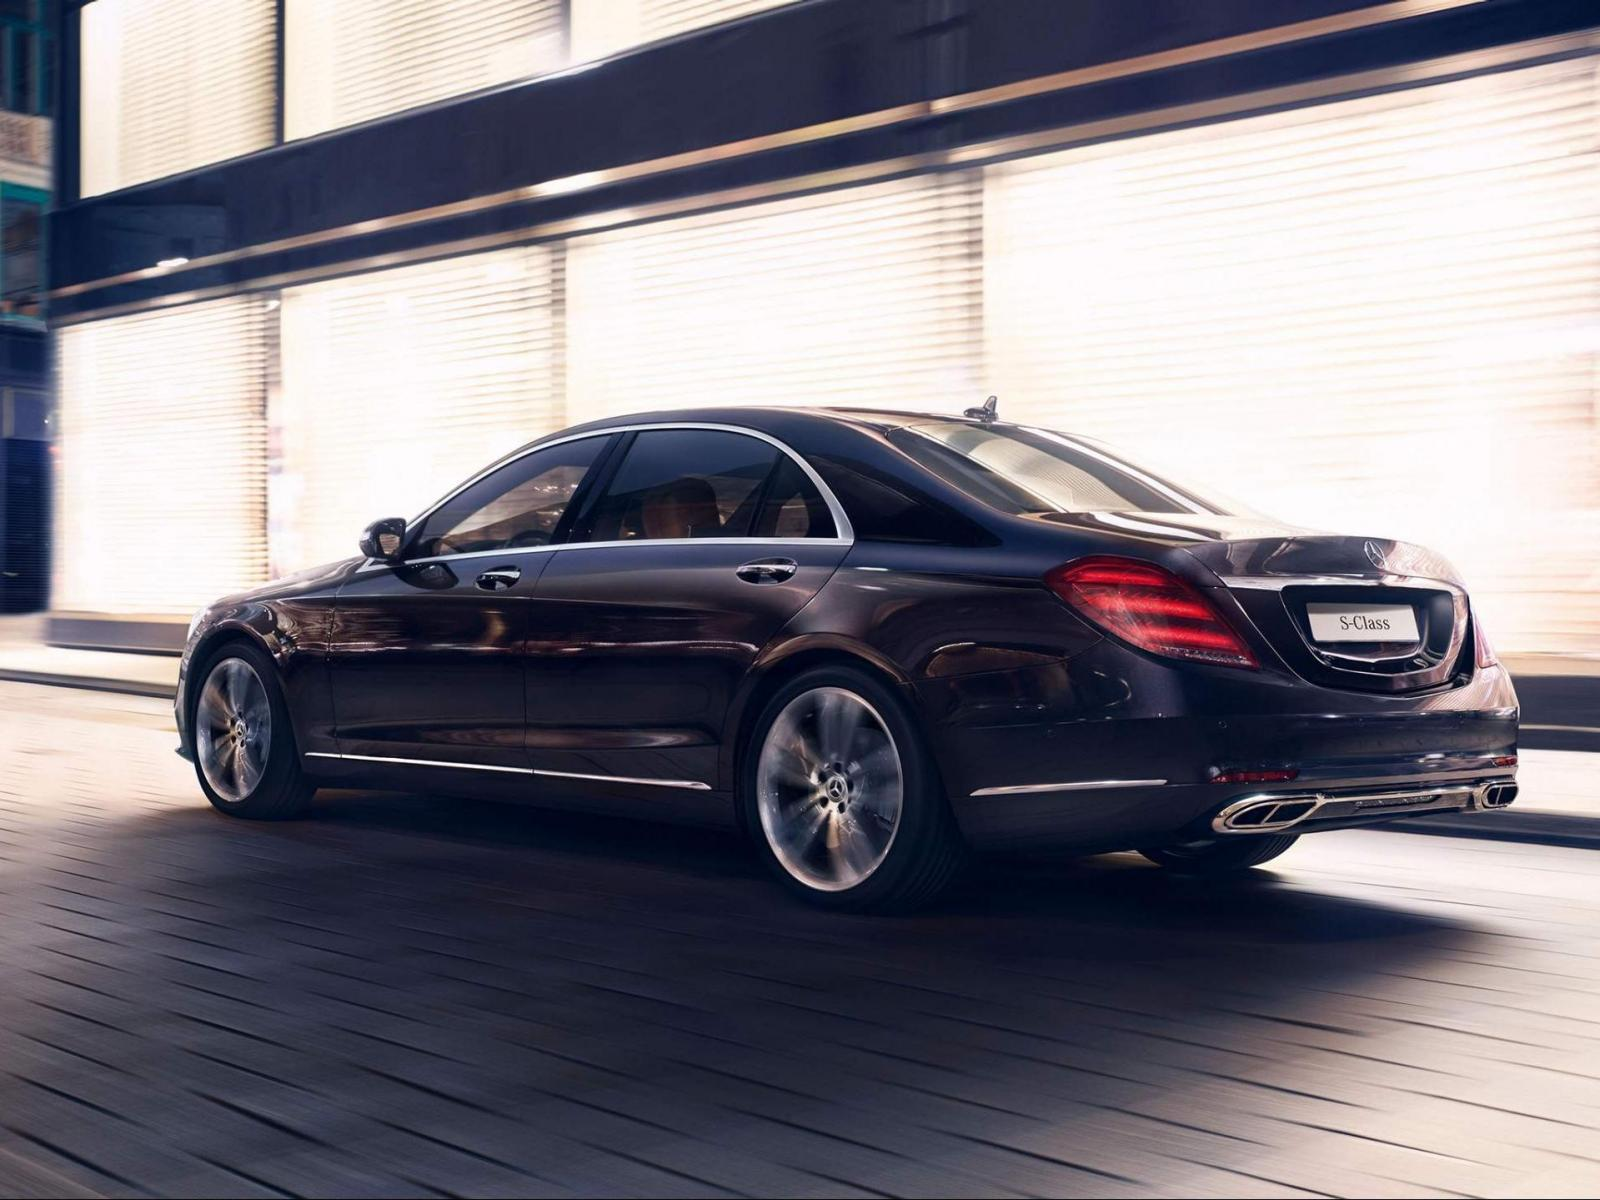 Mercedes Benz S Class Wallpapers Free Download